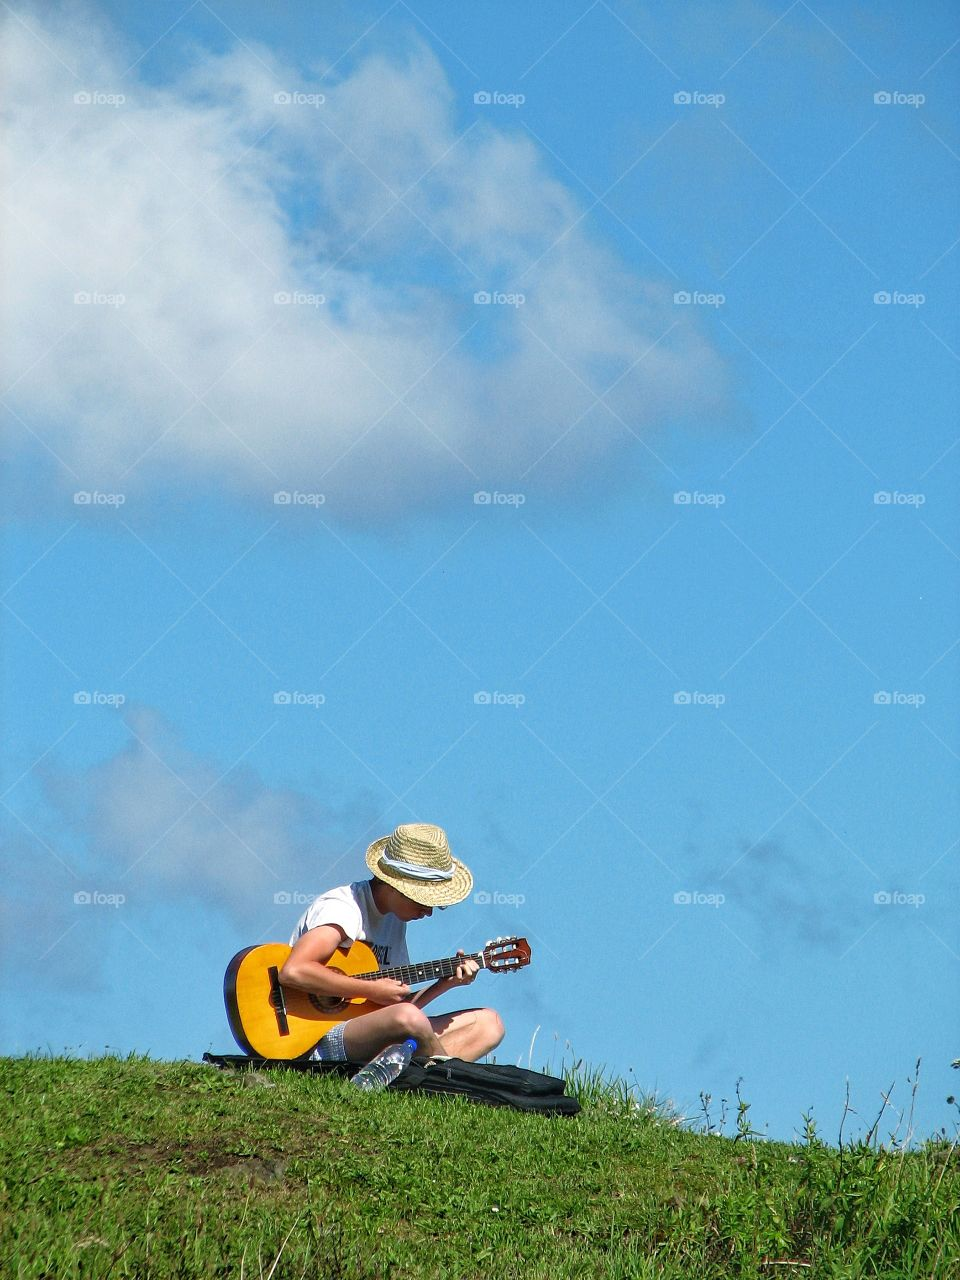 A young boy plays his guitar on a hillside with a beautiful blue sky overhead.